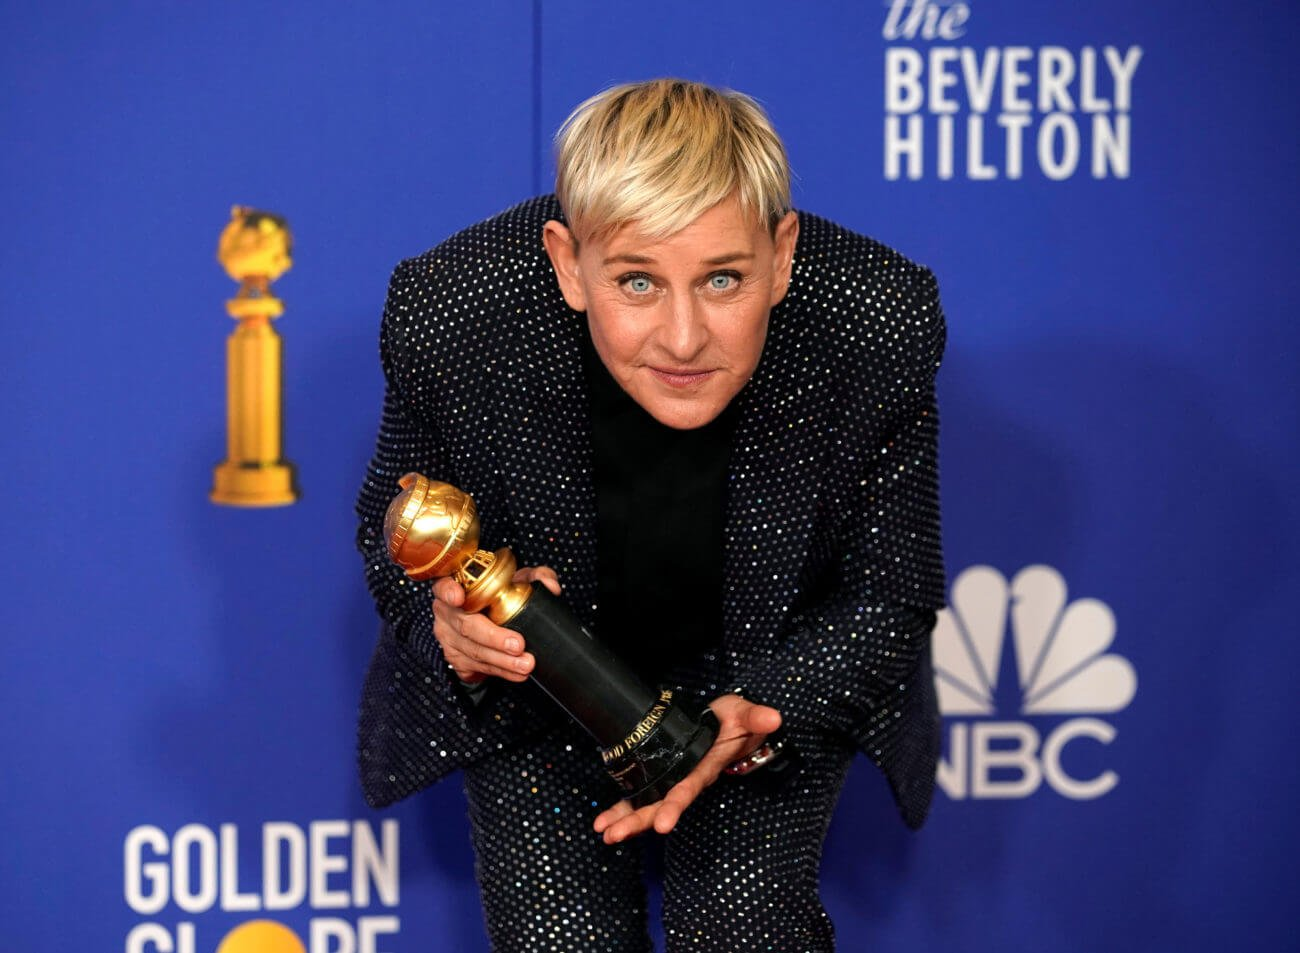 Ellen DeGeneres Lures in a Stay Studio Viewers – All over a Pandemic